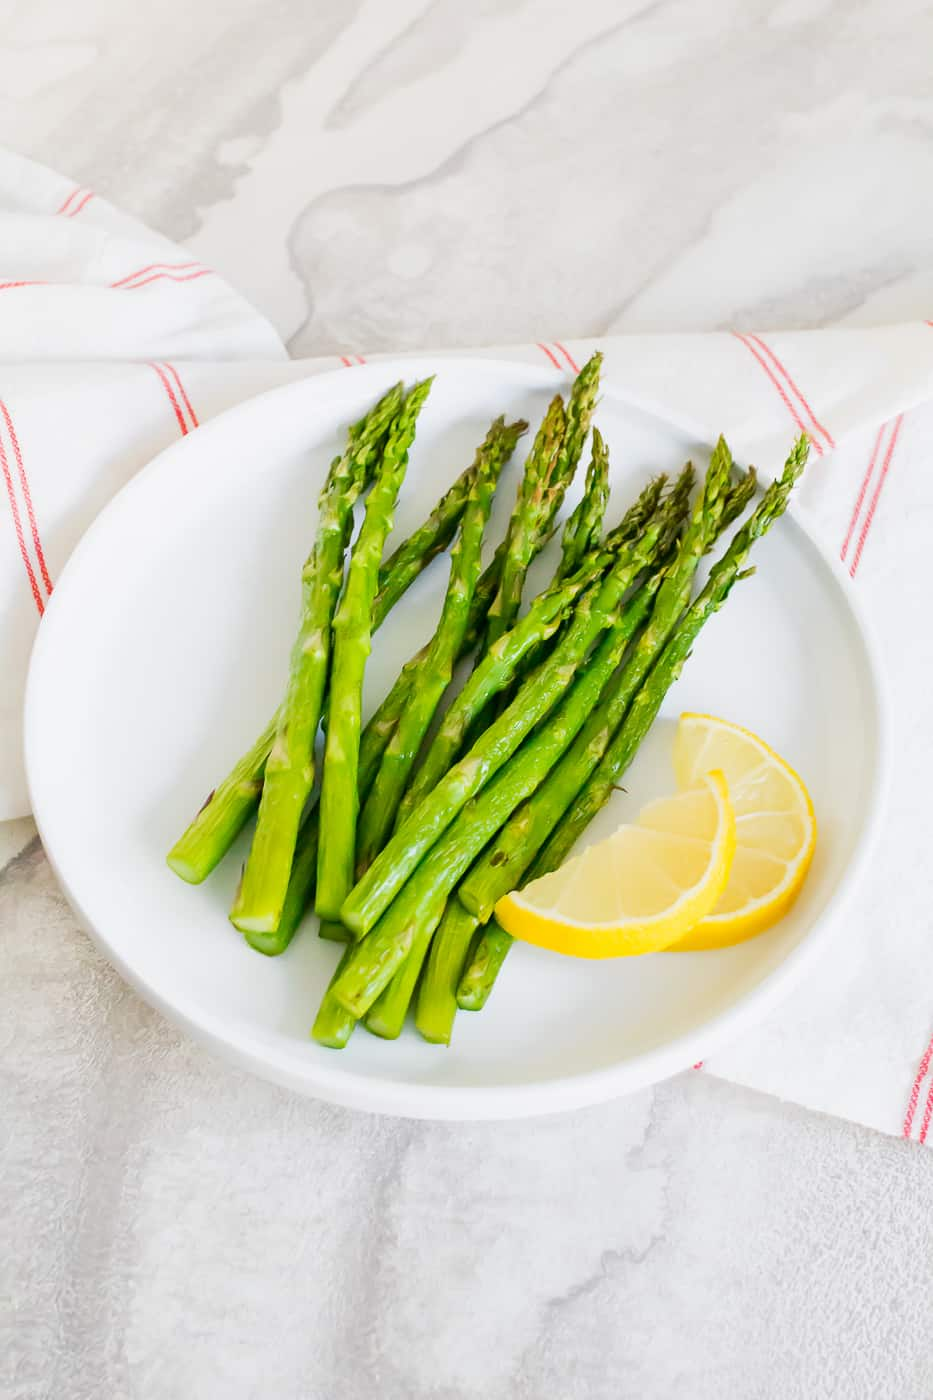 asparagus on a white plate with a yellow lemon cut in half